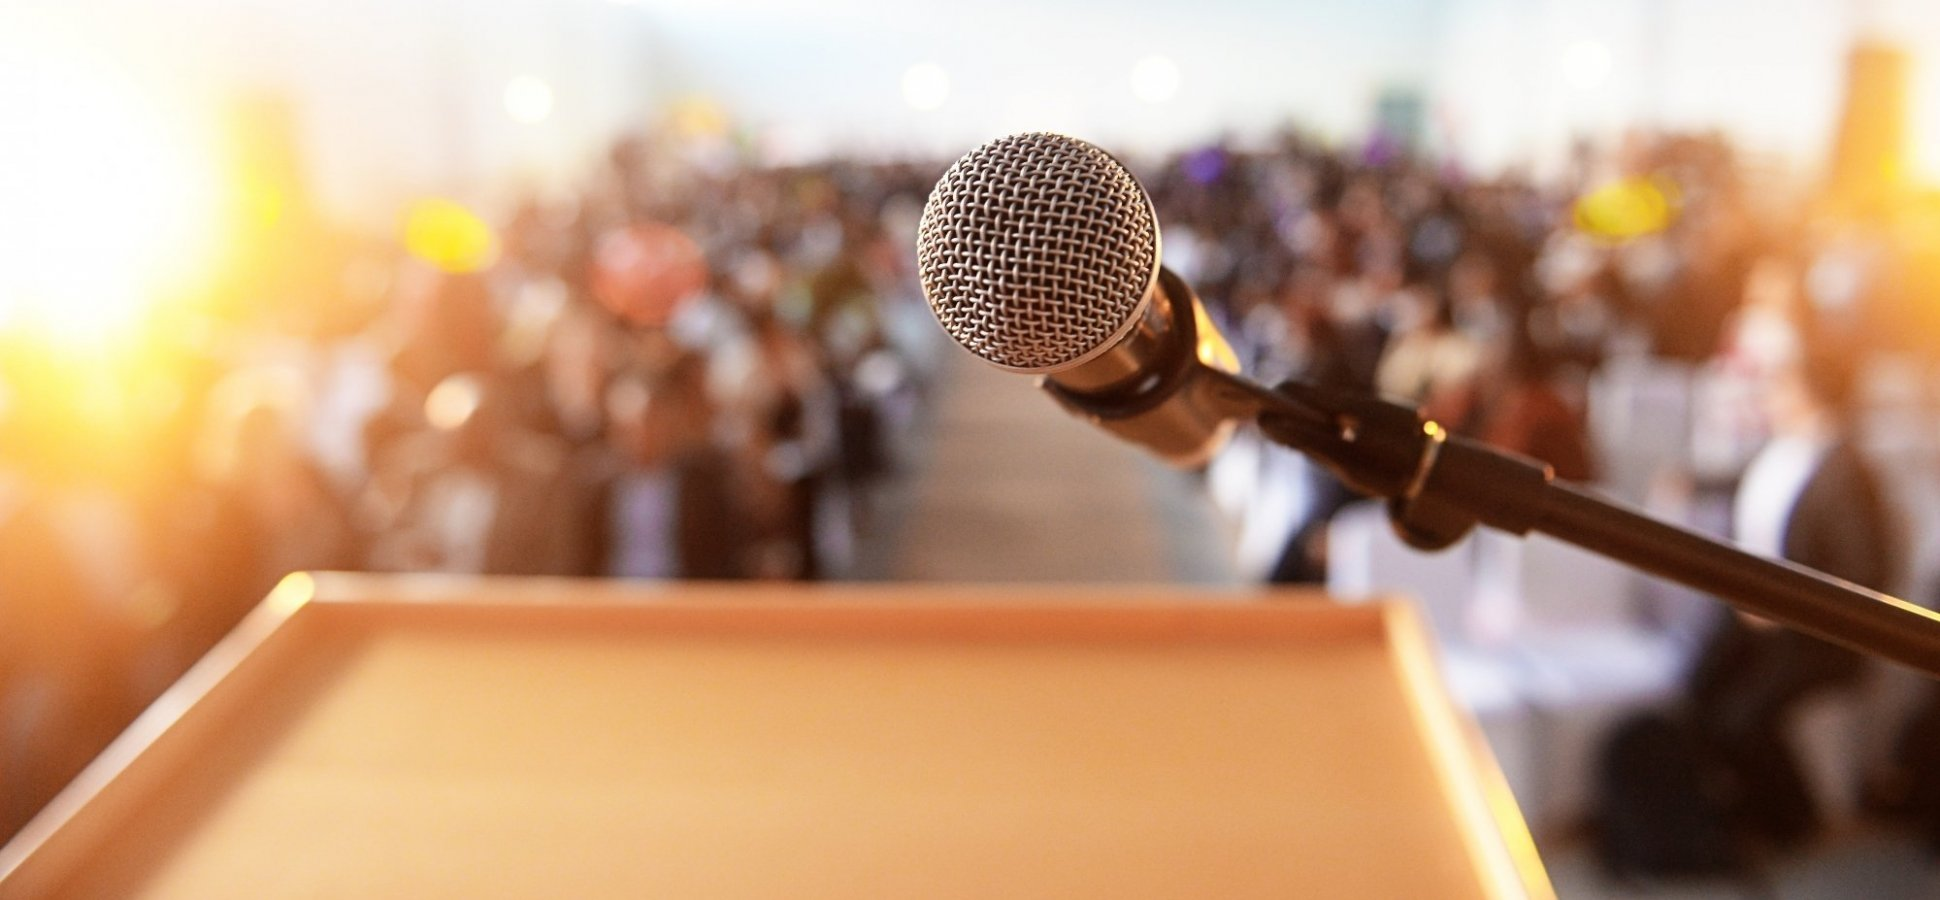 Want to Be a Master at Public Speaking? These 4 Techniques Can Help Transform You Overnight